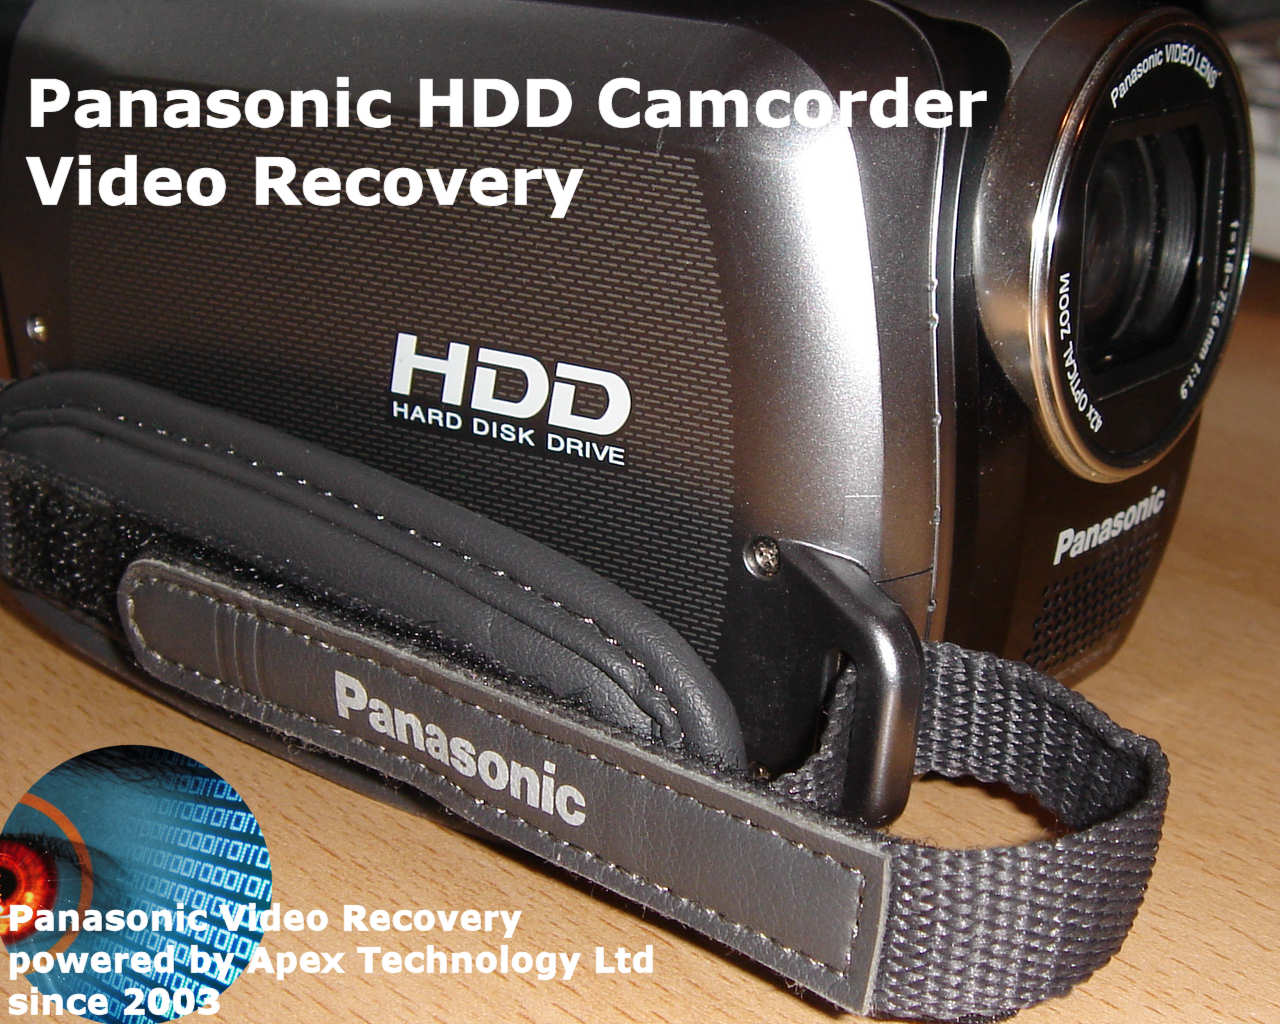 Panasonic HDD Camcorder video recovery